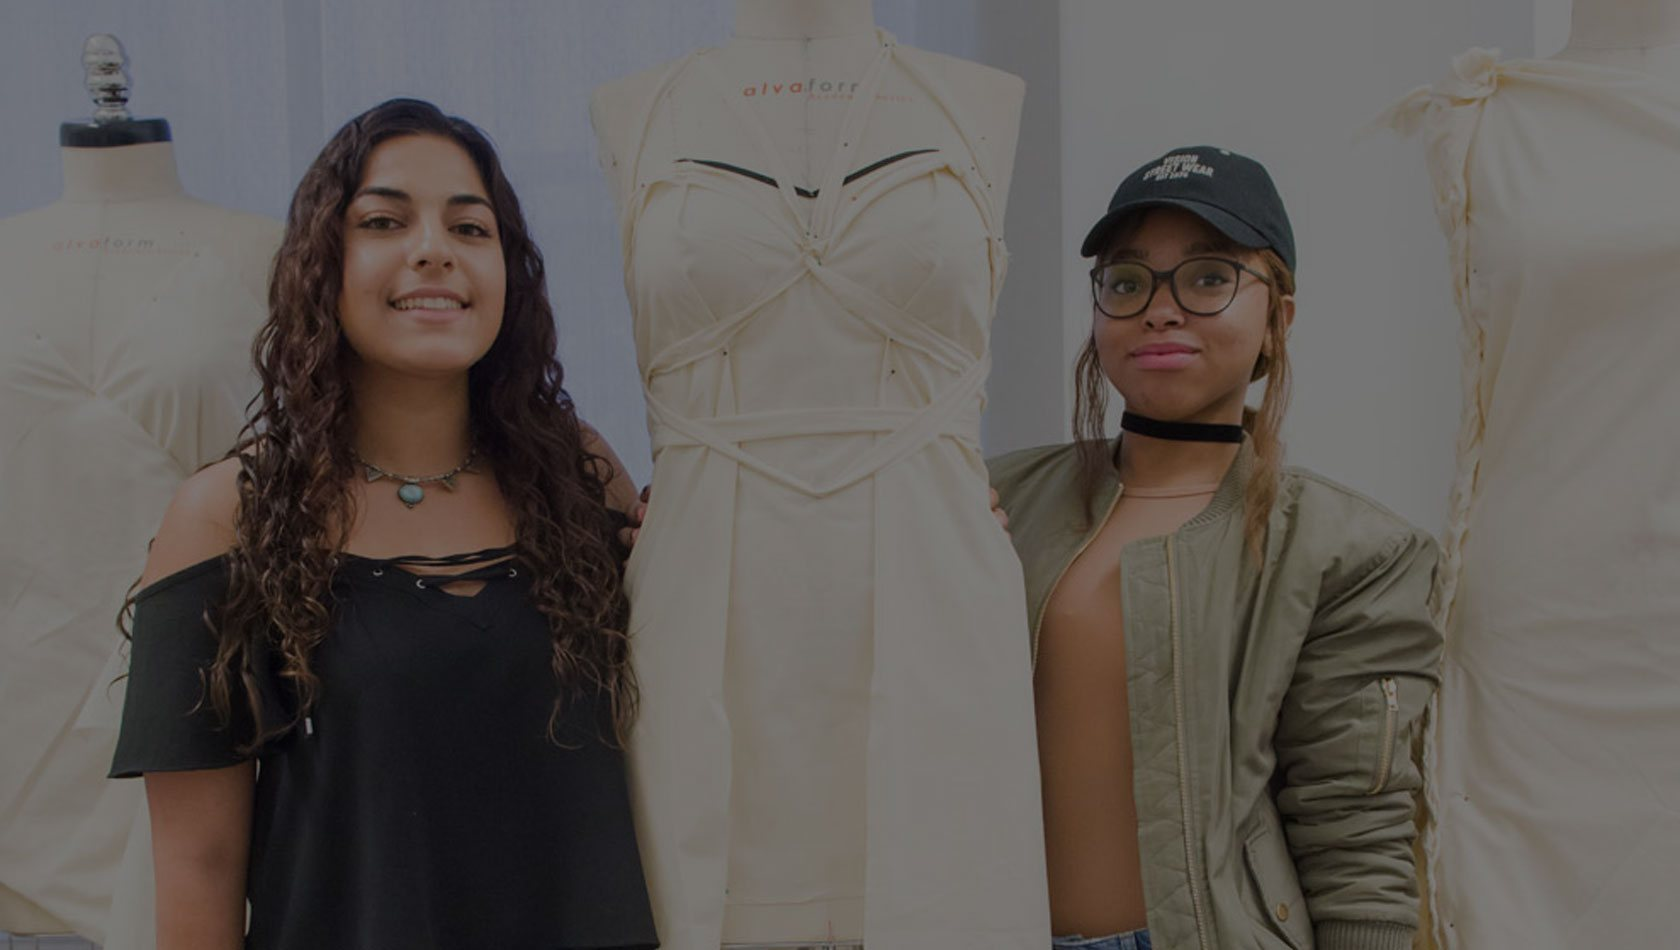 Fashion design educational tours